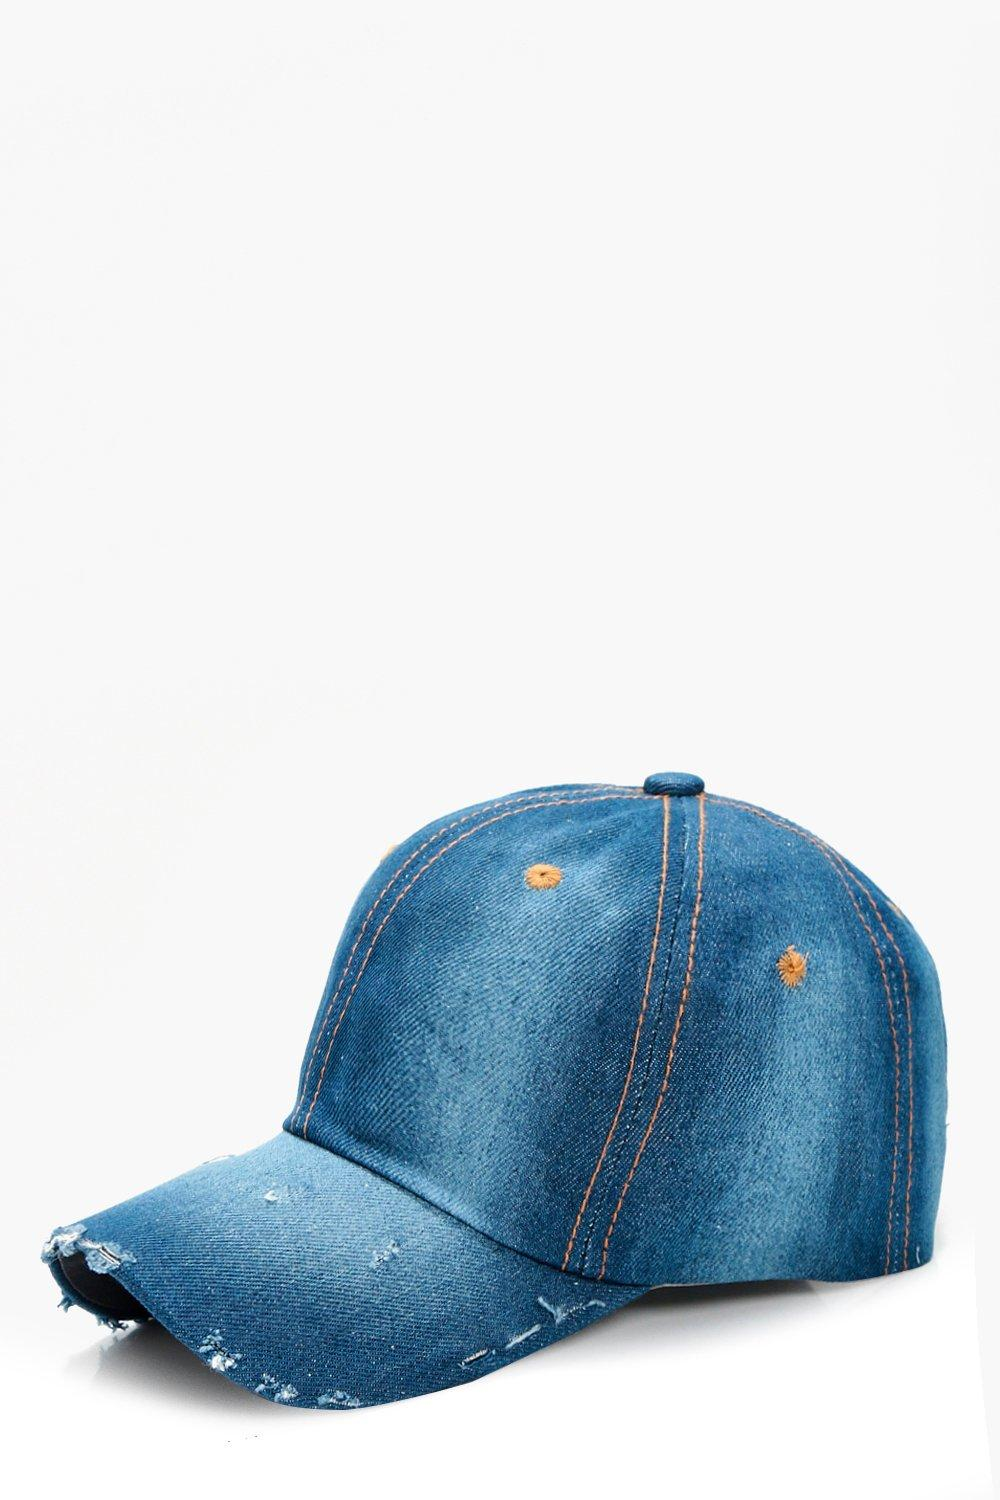 Distressed Denim Cap - dark blue - Lucy Distressed